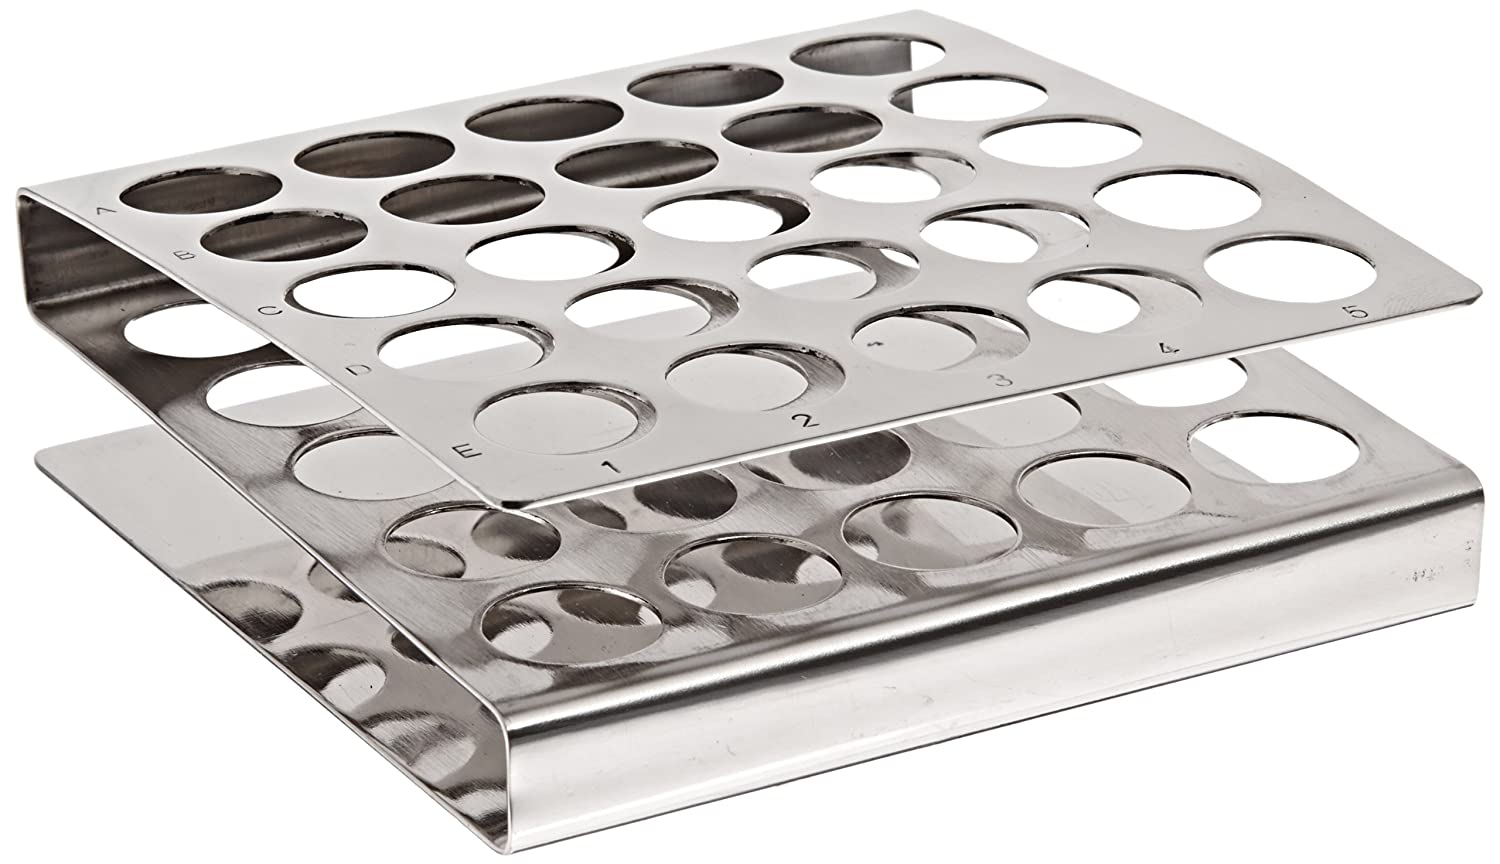 BrandTech B8293 Stainless Steel Z-style Test Tube Max 60% OFF 17mm It is very popular 2 Rack x